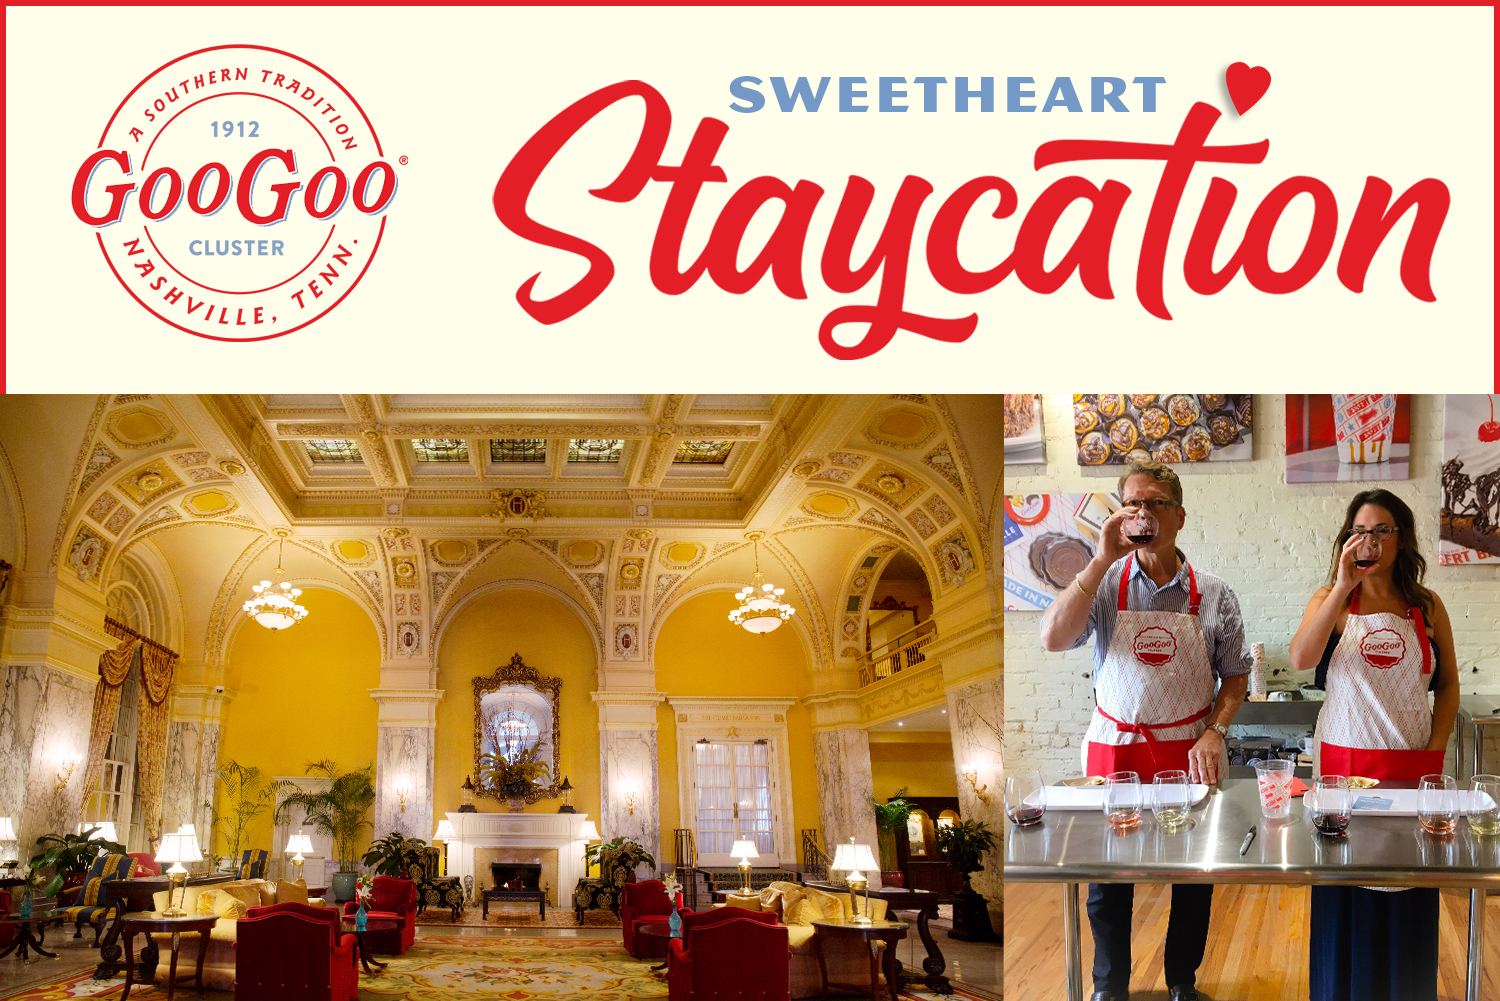 ❤️ Sweetheart Staycation Giveaway ❤️ Image